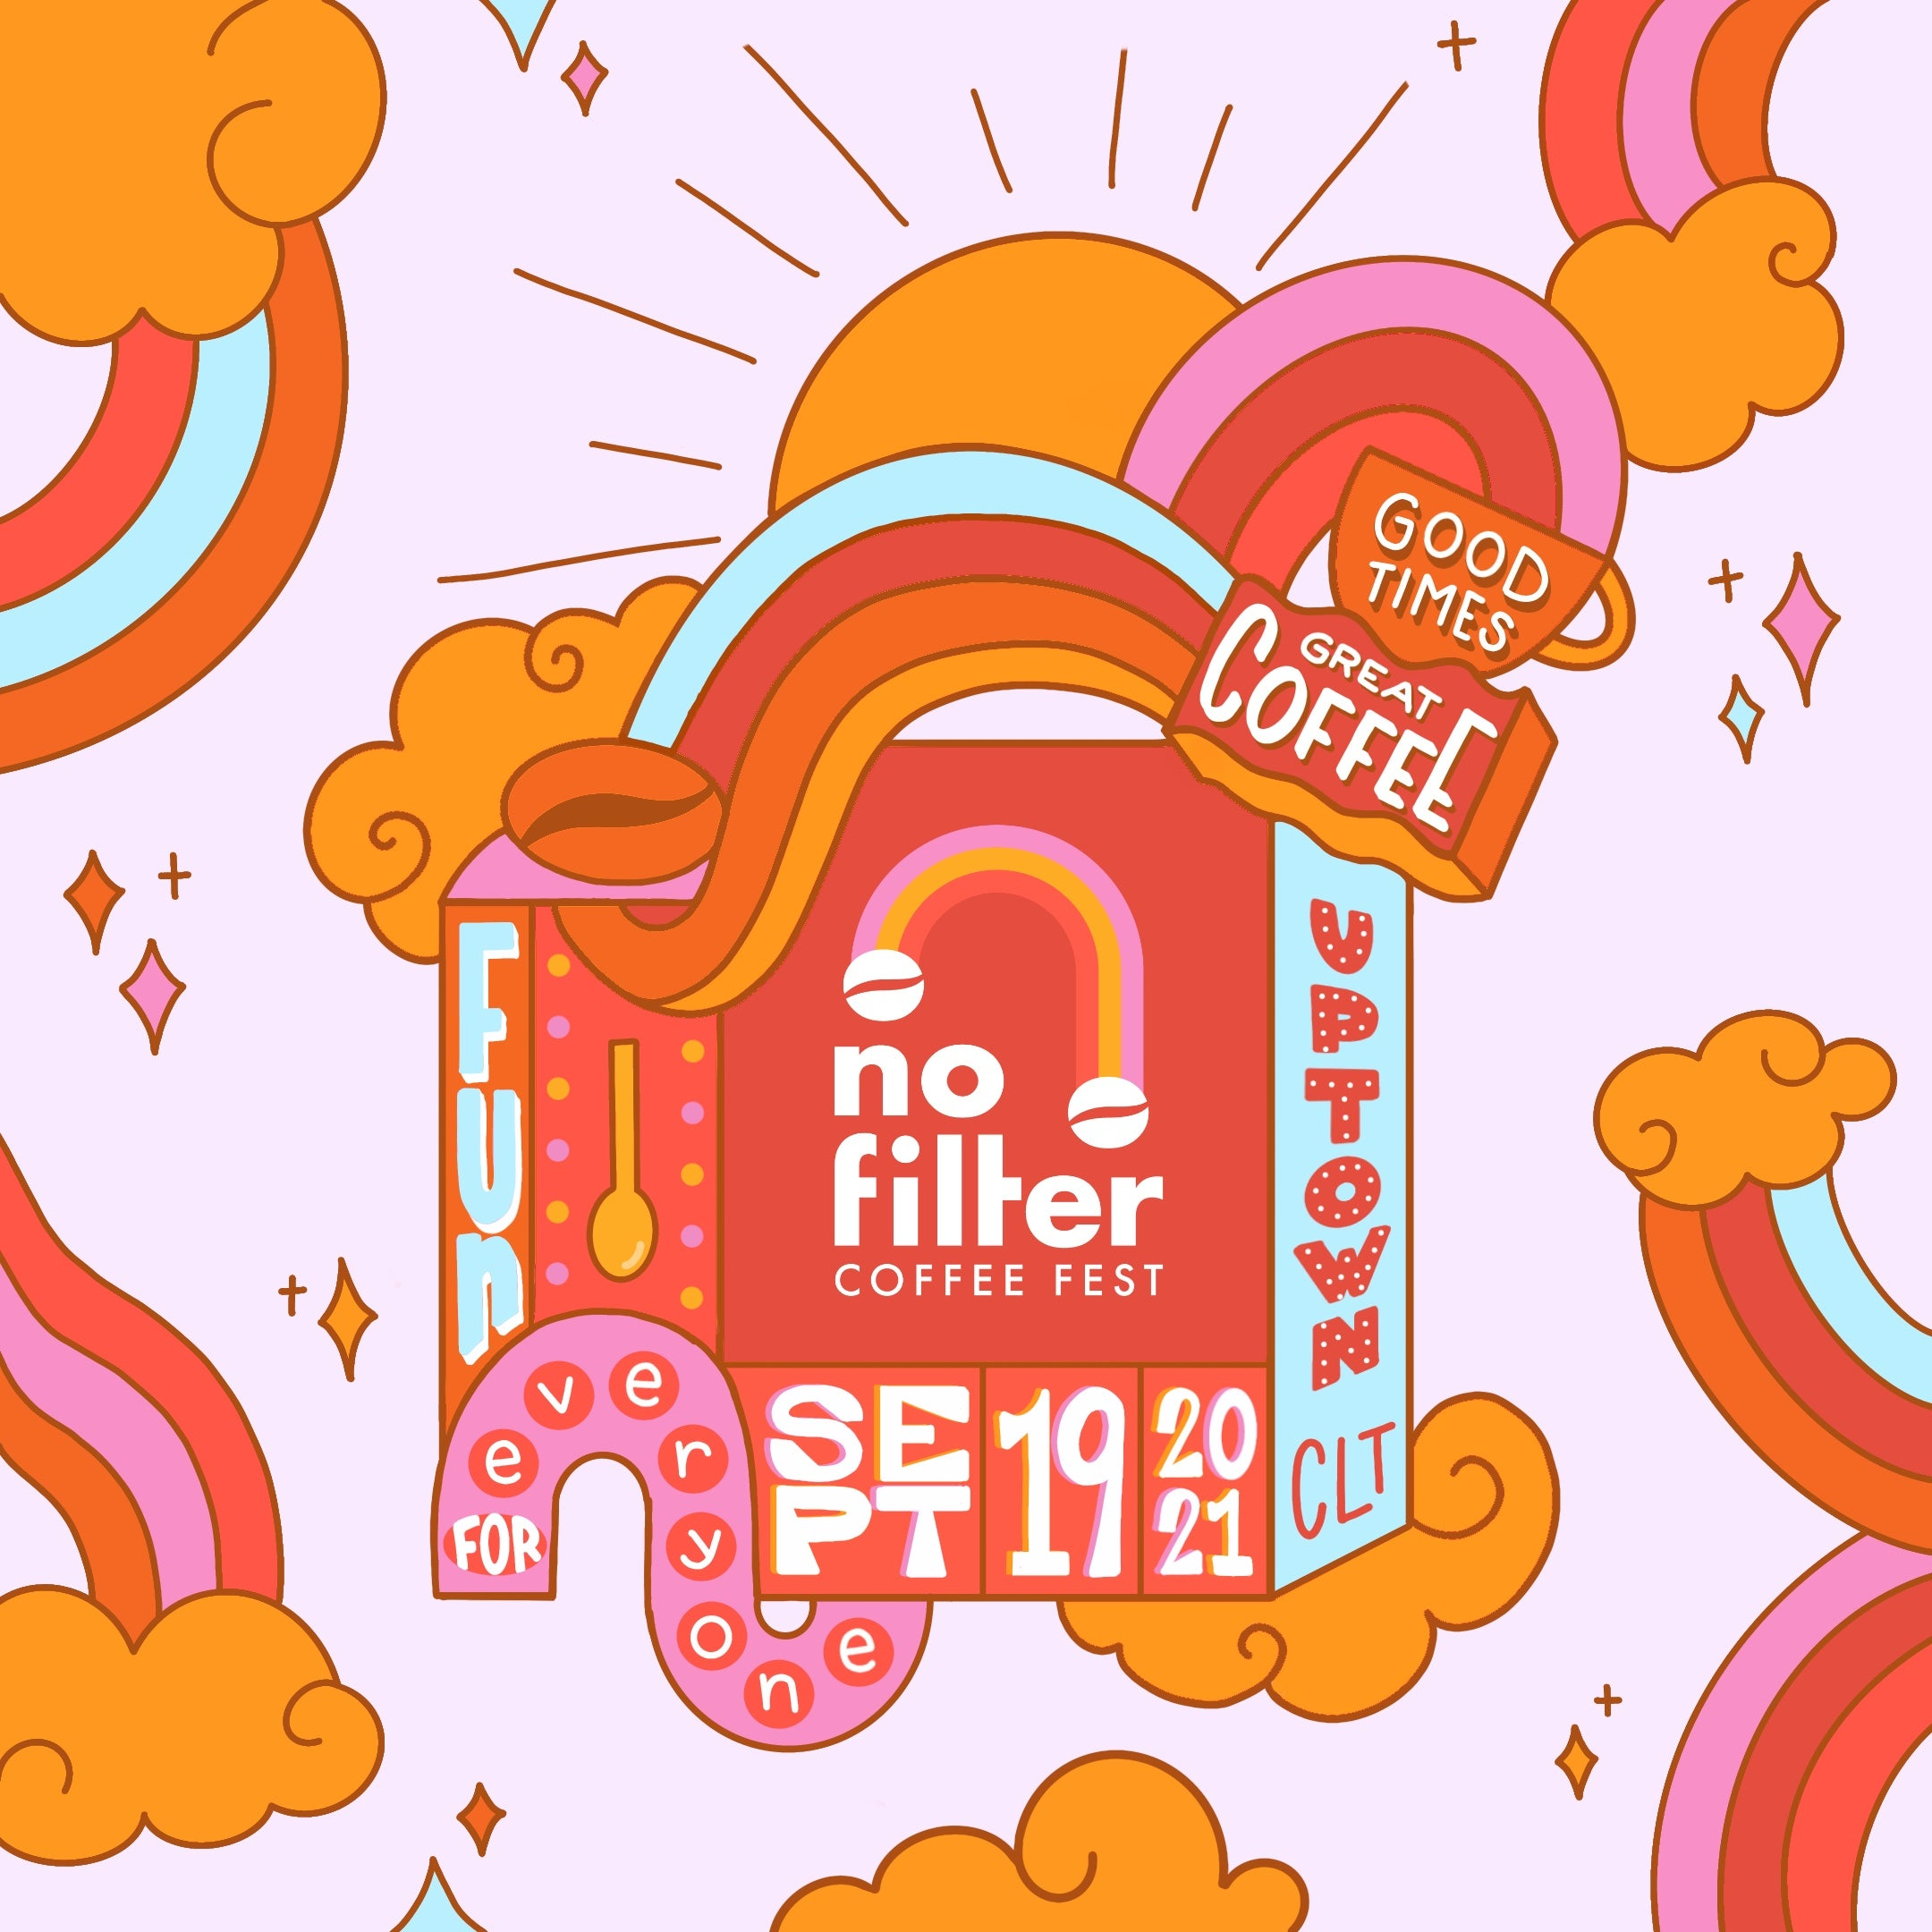 No Filter Coffee Fest